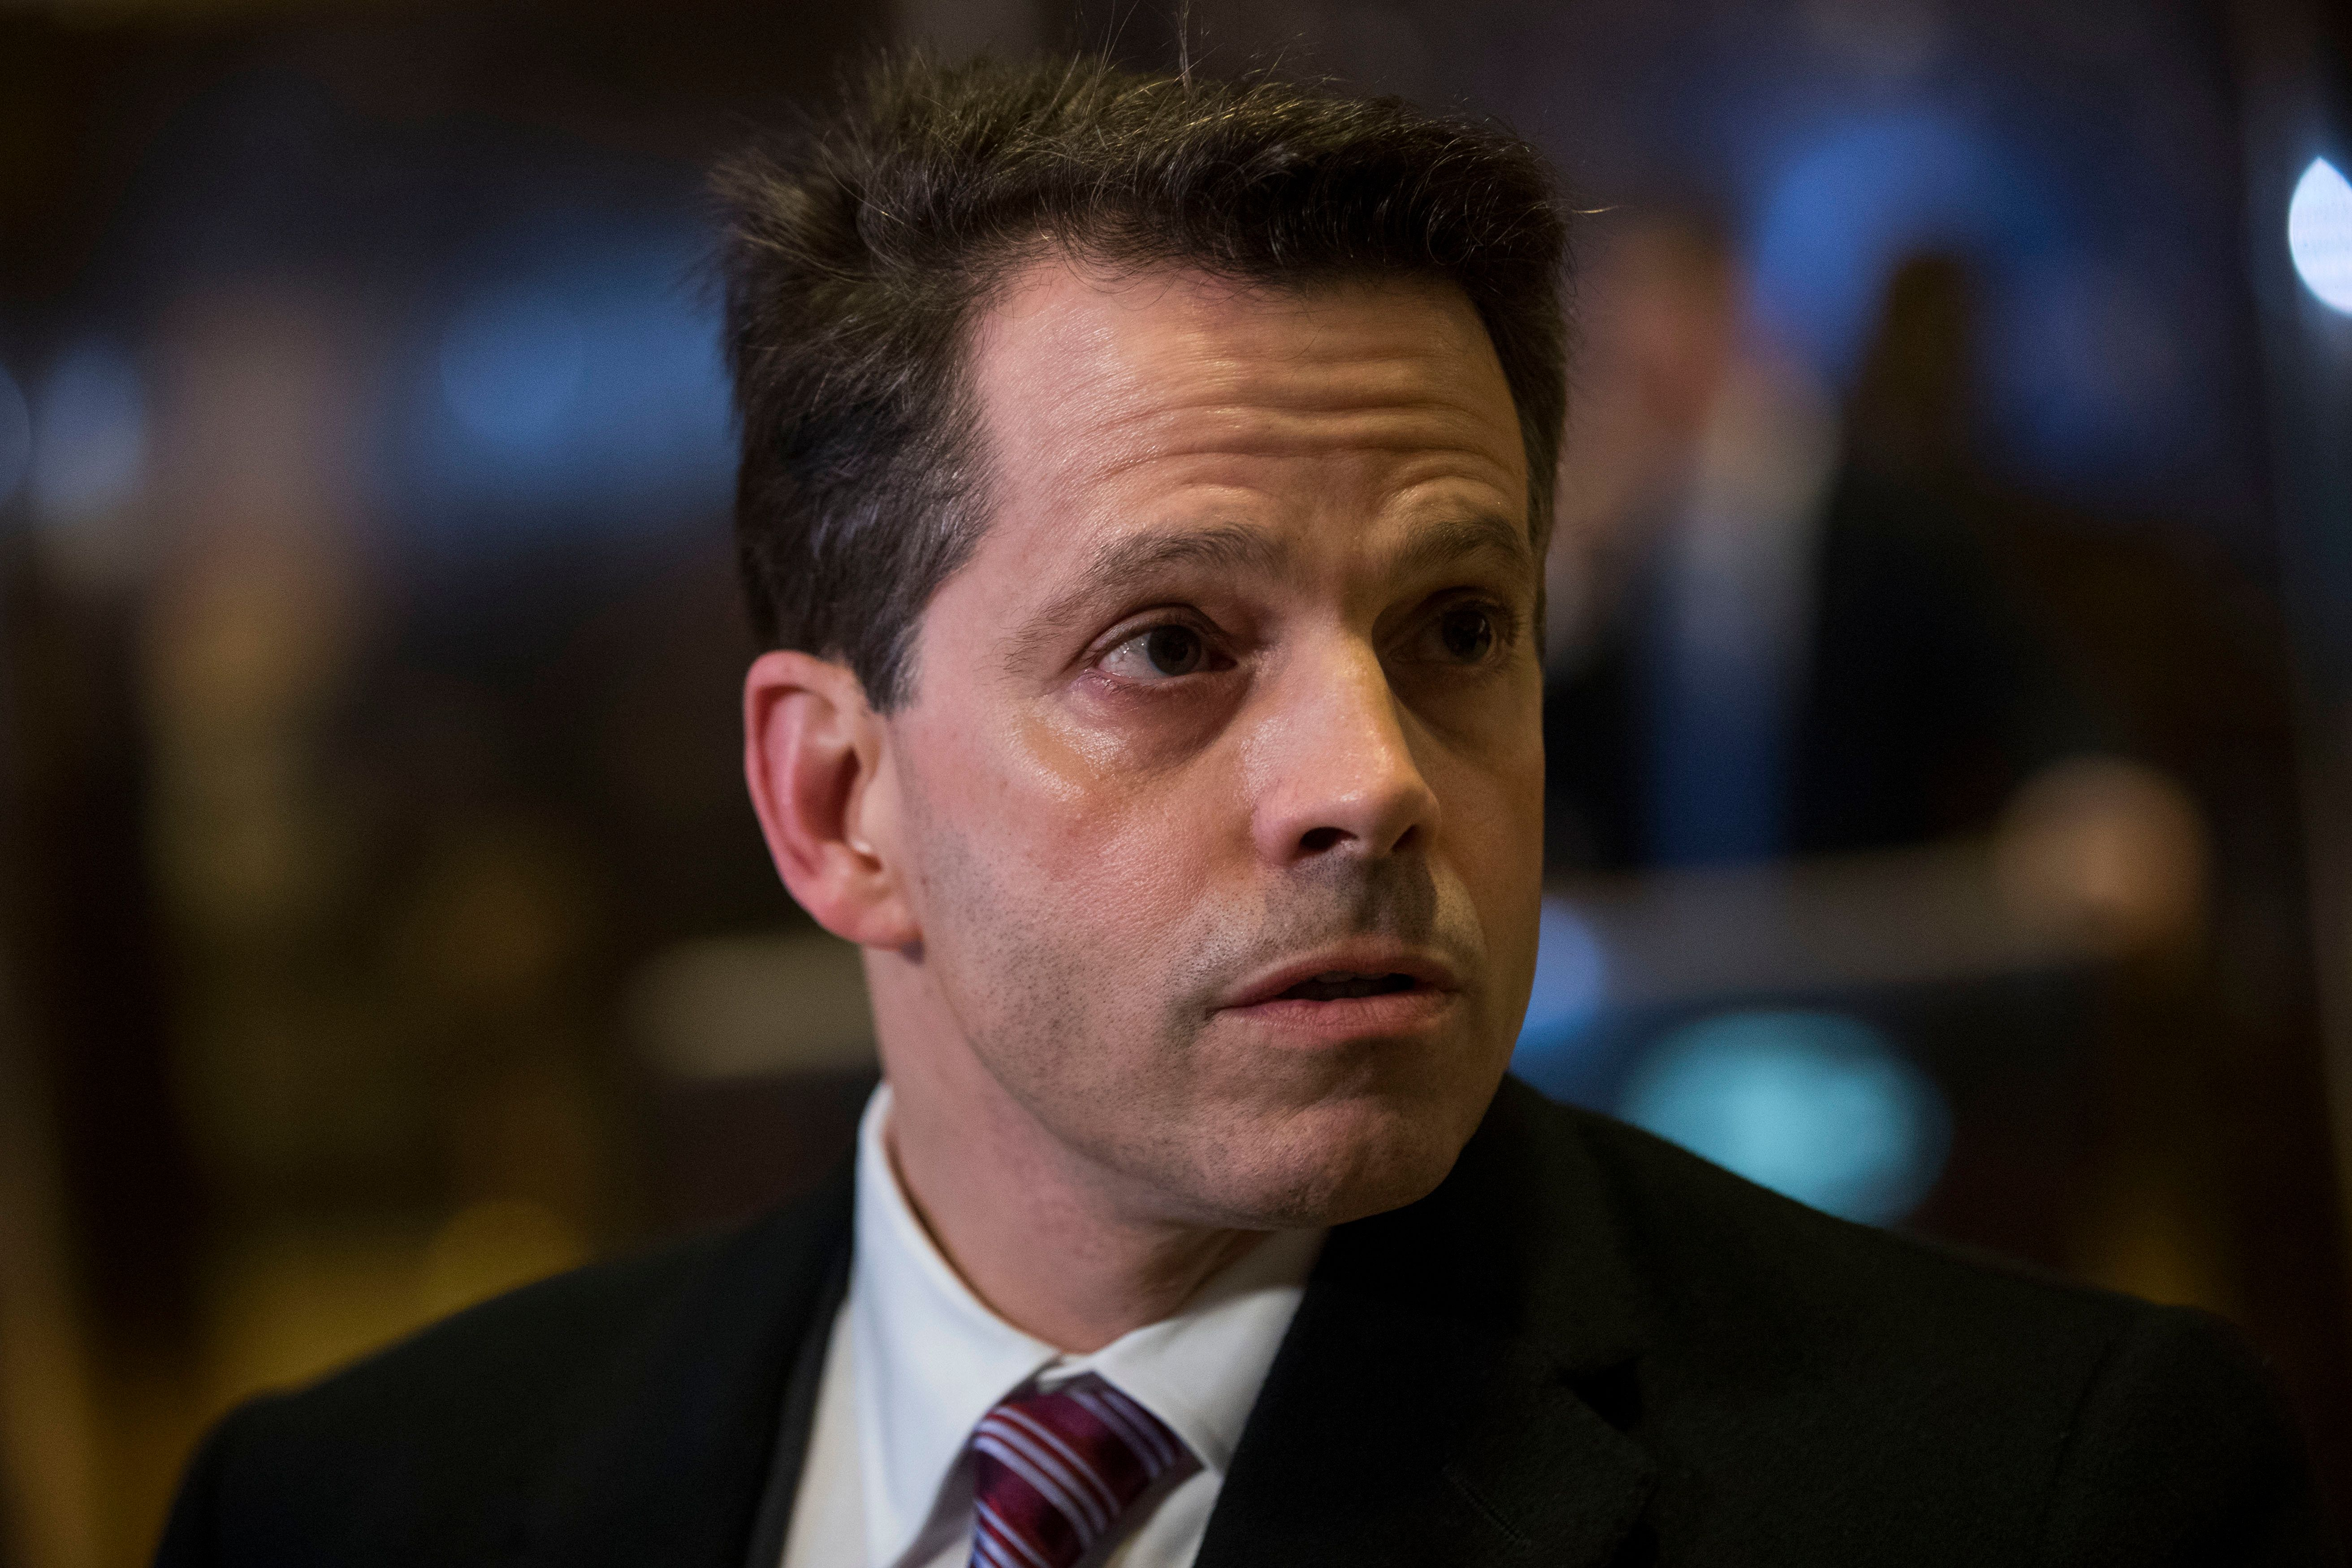 Is Anthony Scaramucci the new White House communications director?